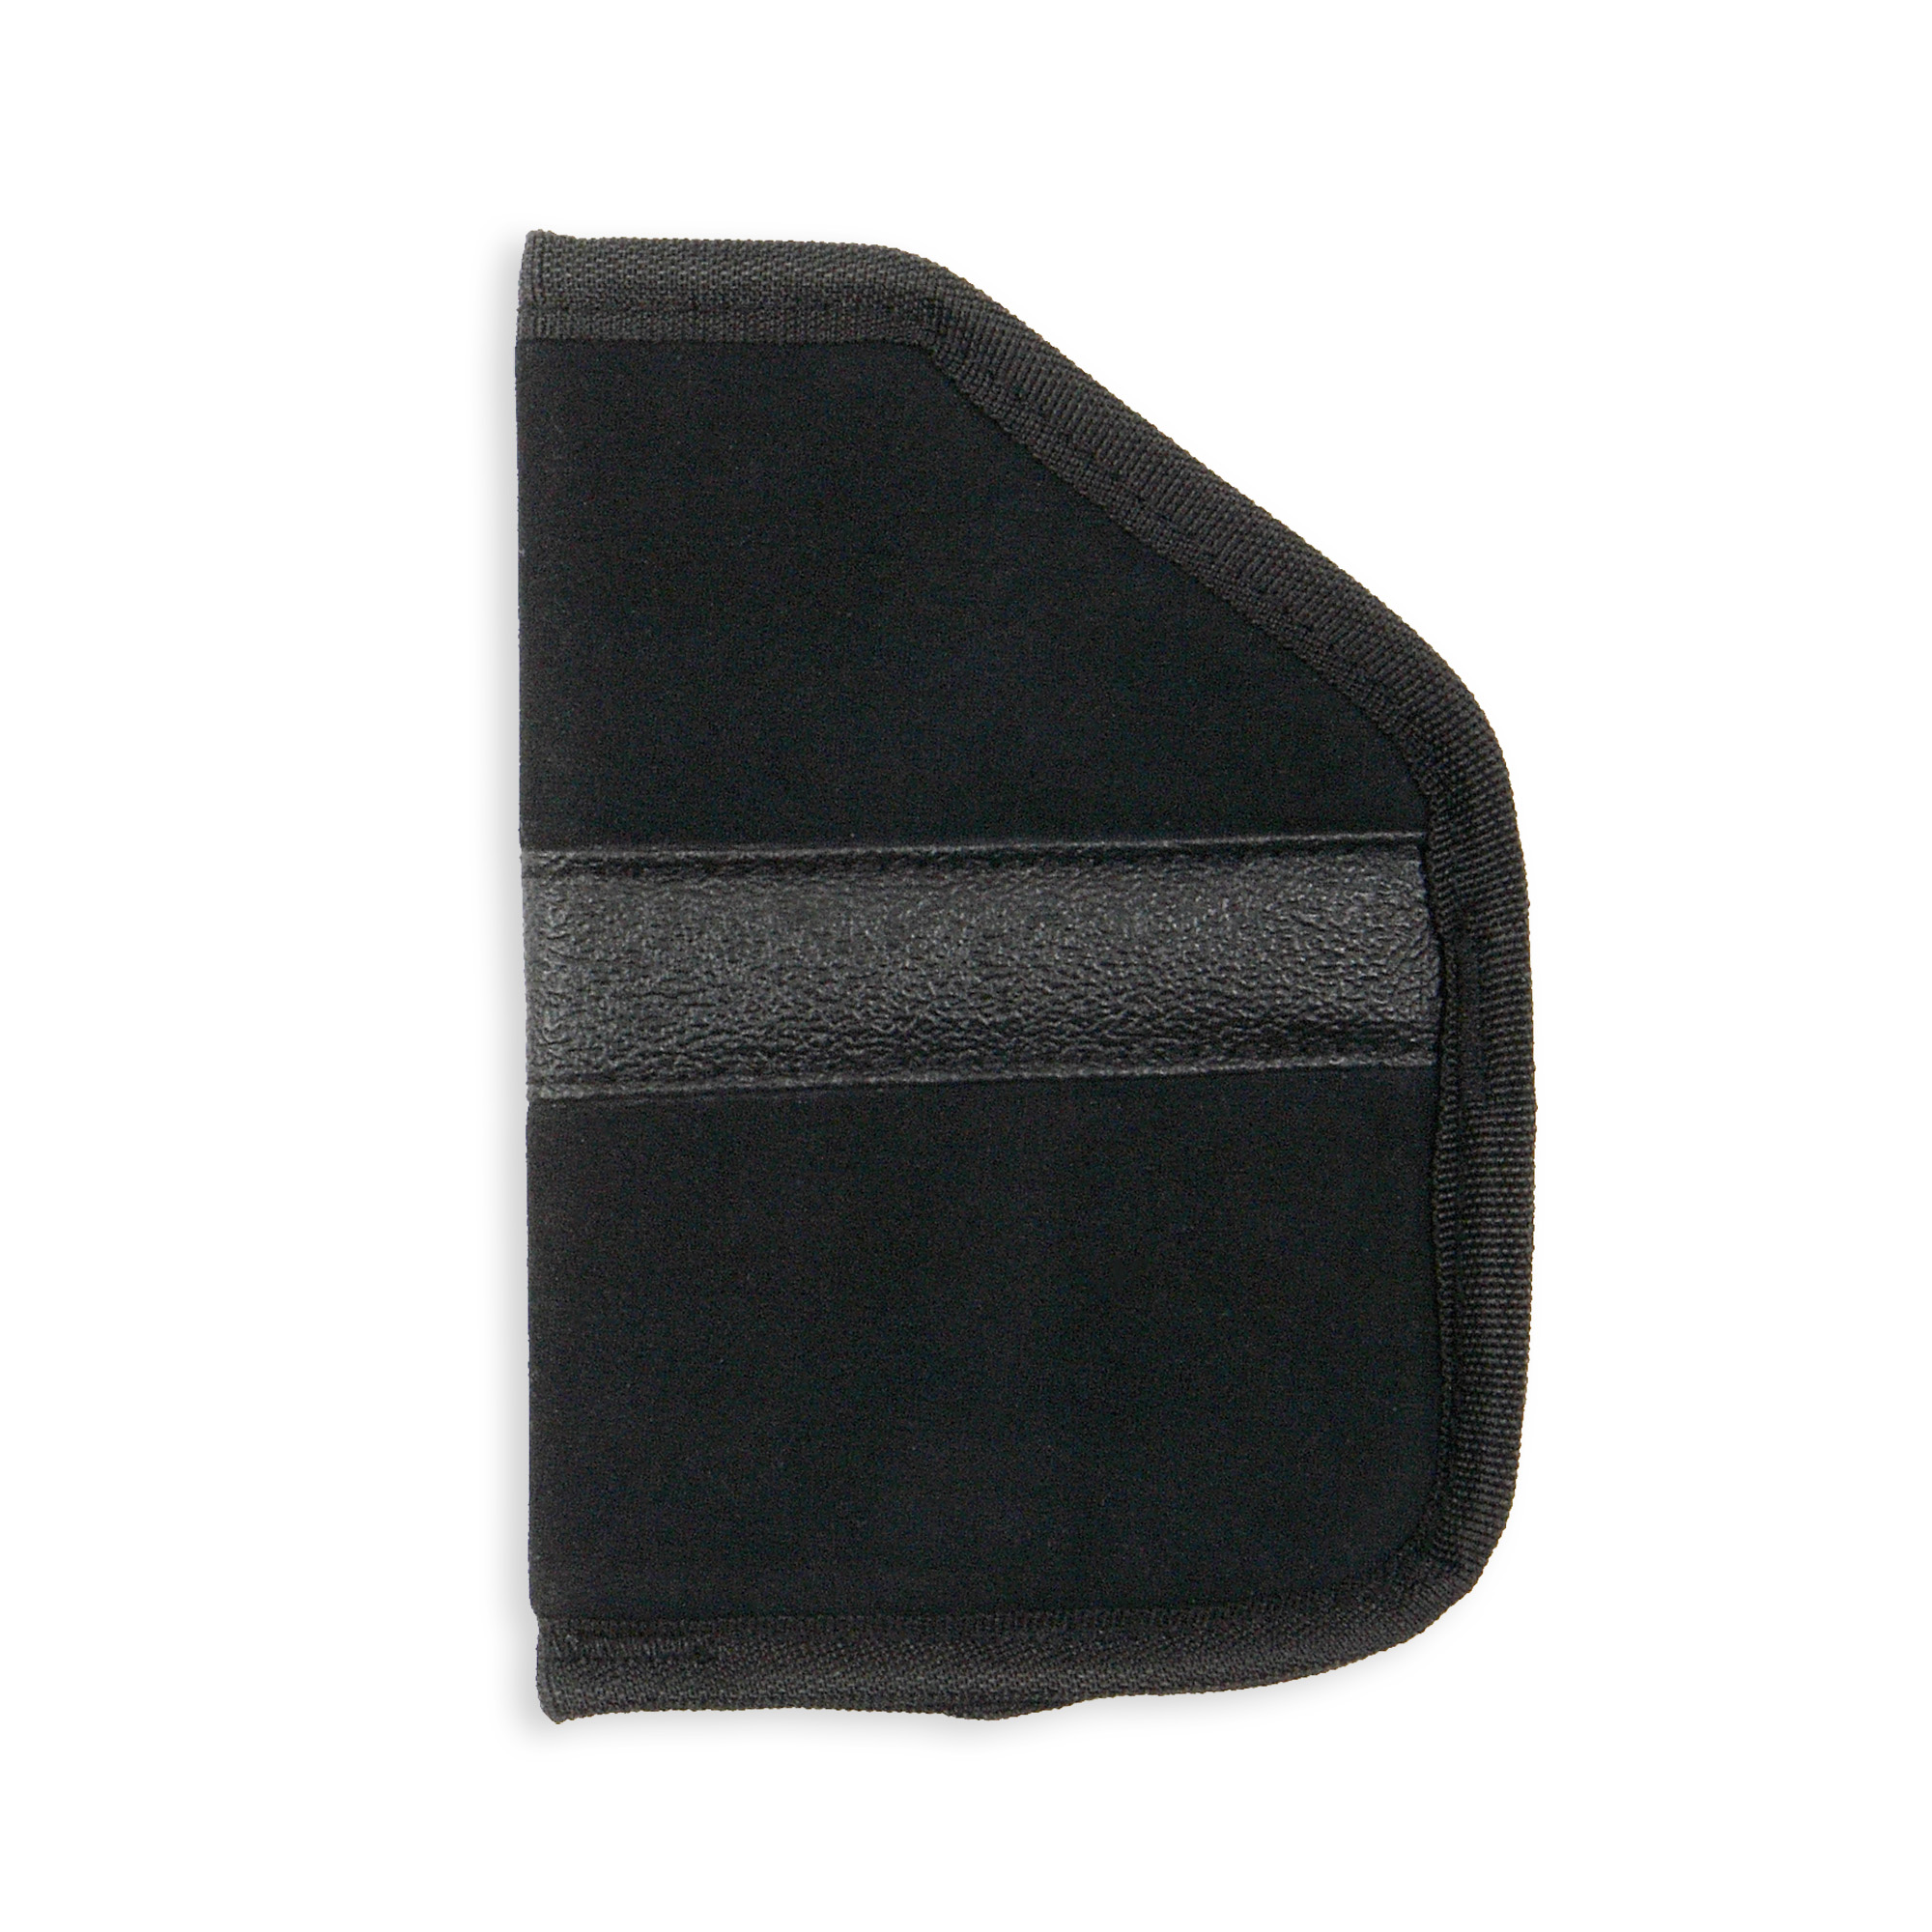 Fused Padding Helps Conceal The Pistol Outline While Protecting The User's Leg From The Sharp Edges Of The Pistol. Non-Slip Band Helps Keep The Holster In Place In The Pocket When Pistol Is Drawn. Size large.